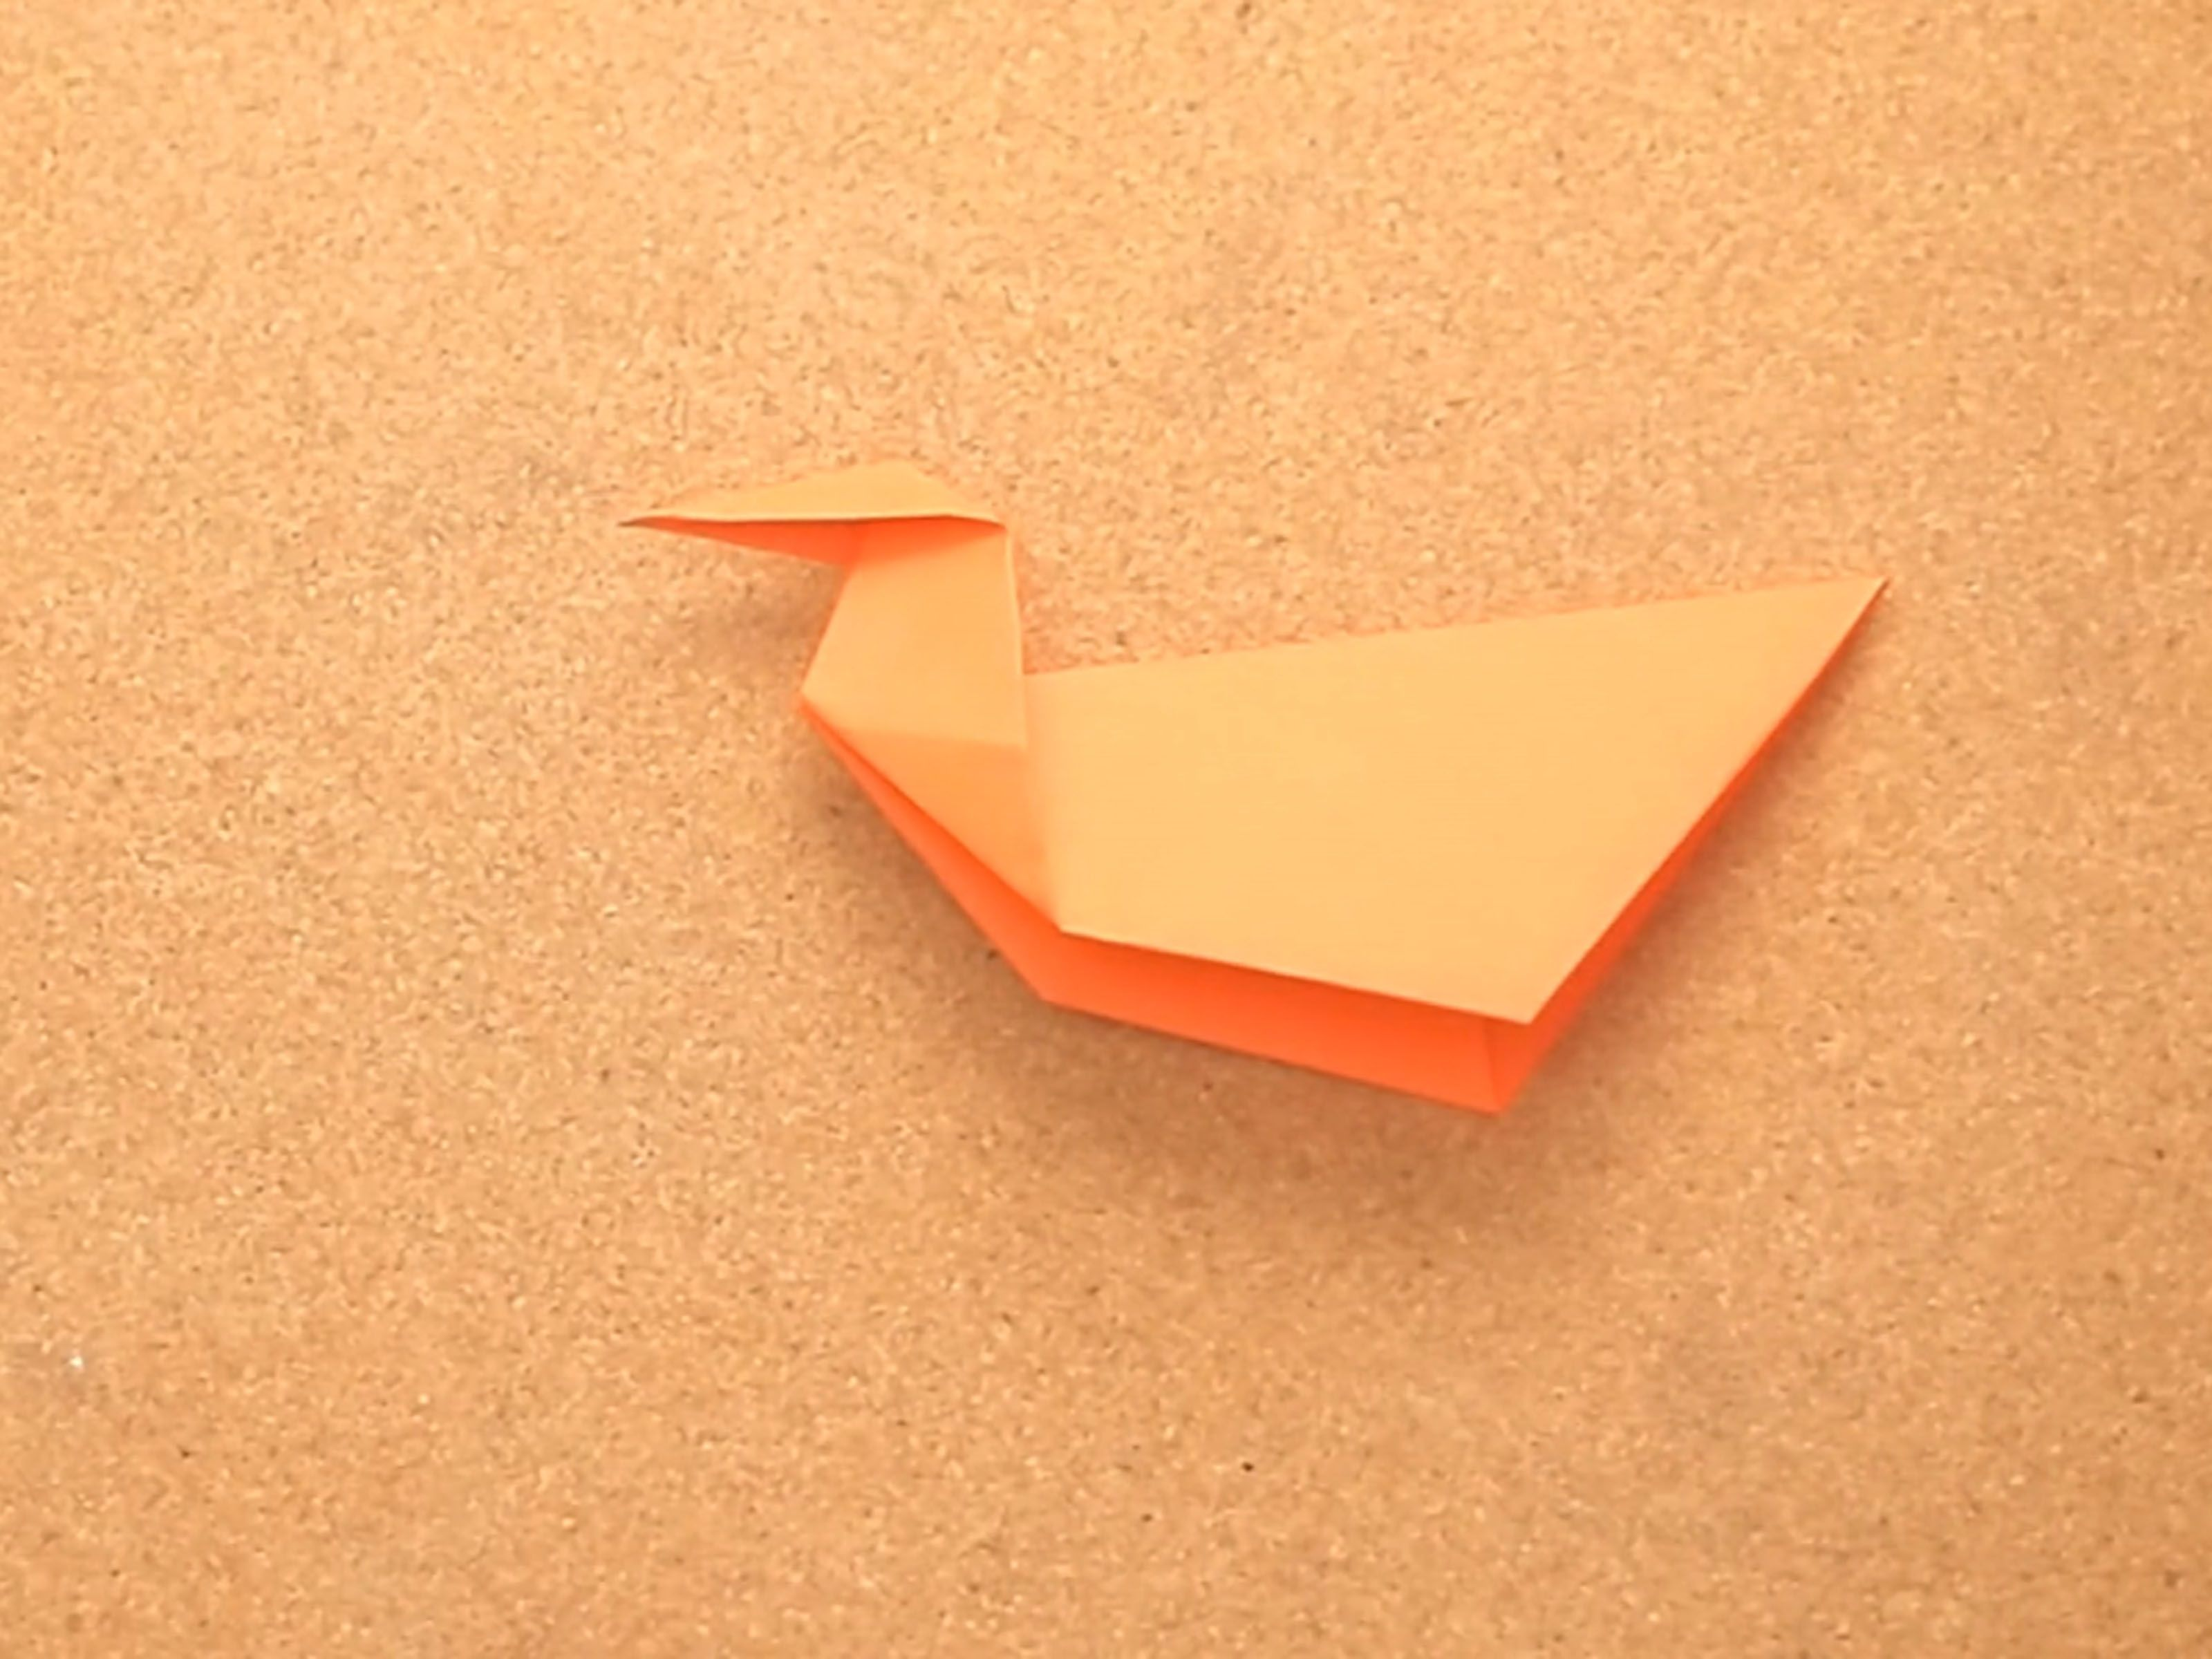 Origami animals #1 - How to make an origami bird I - YouTube | 2400x3200